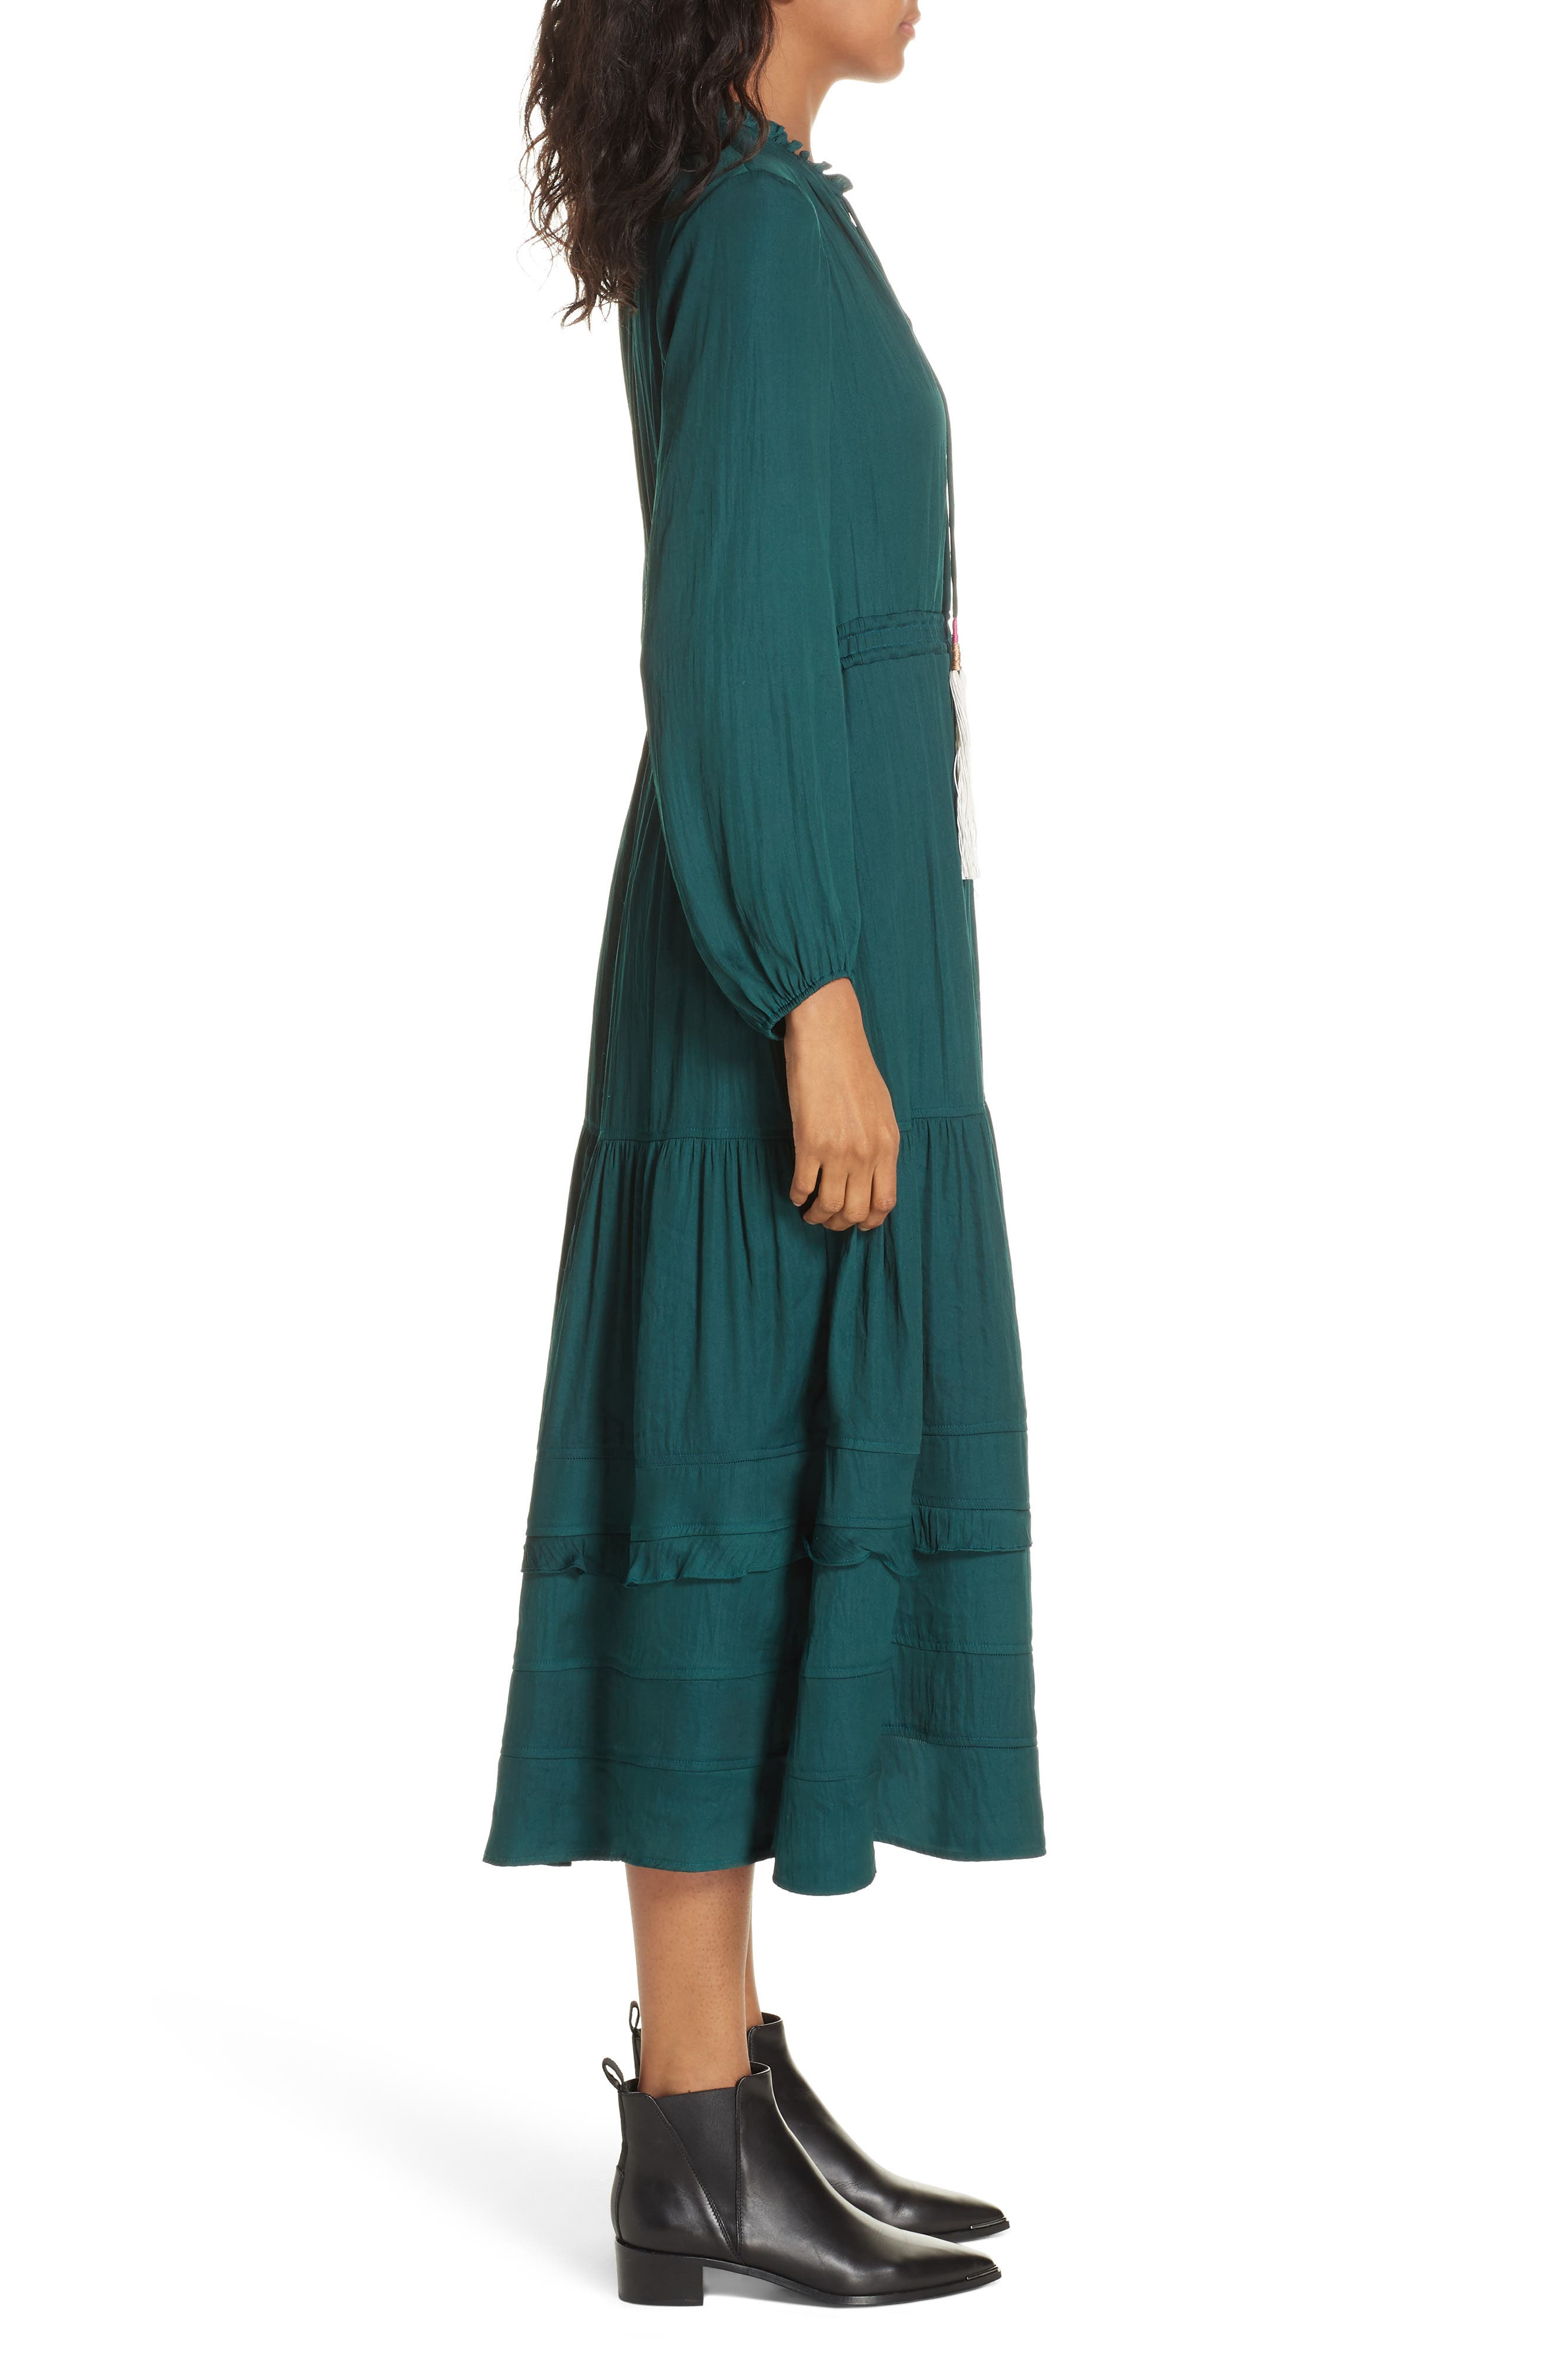 Tassel Tie Midi Dress,                             Alternate thumbnail 3, color,                             FOREST